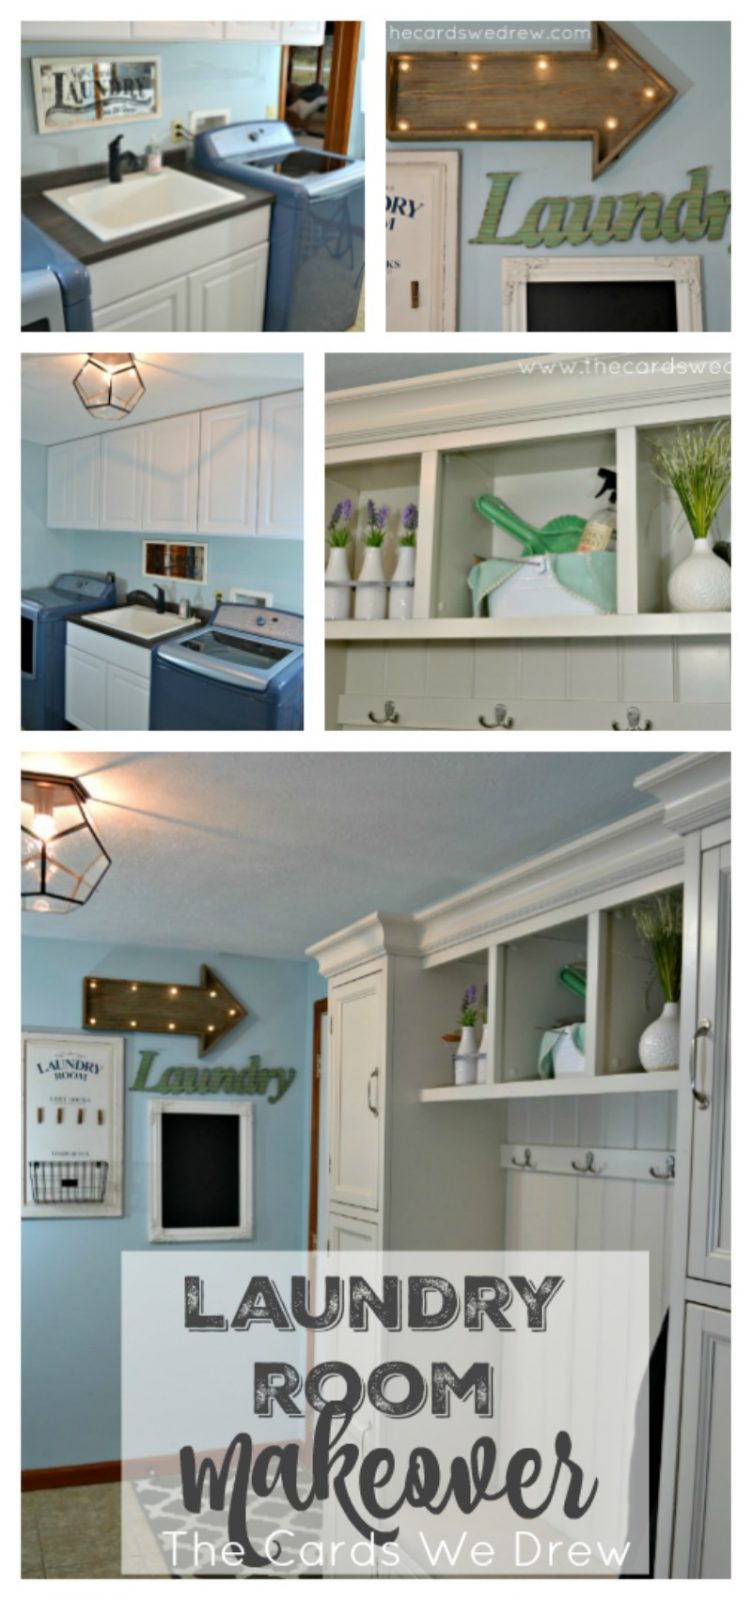 Laundry Room Makeover - The Cards We Drew